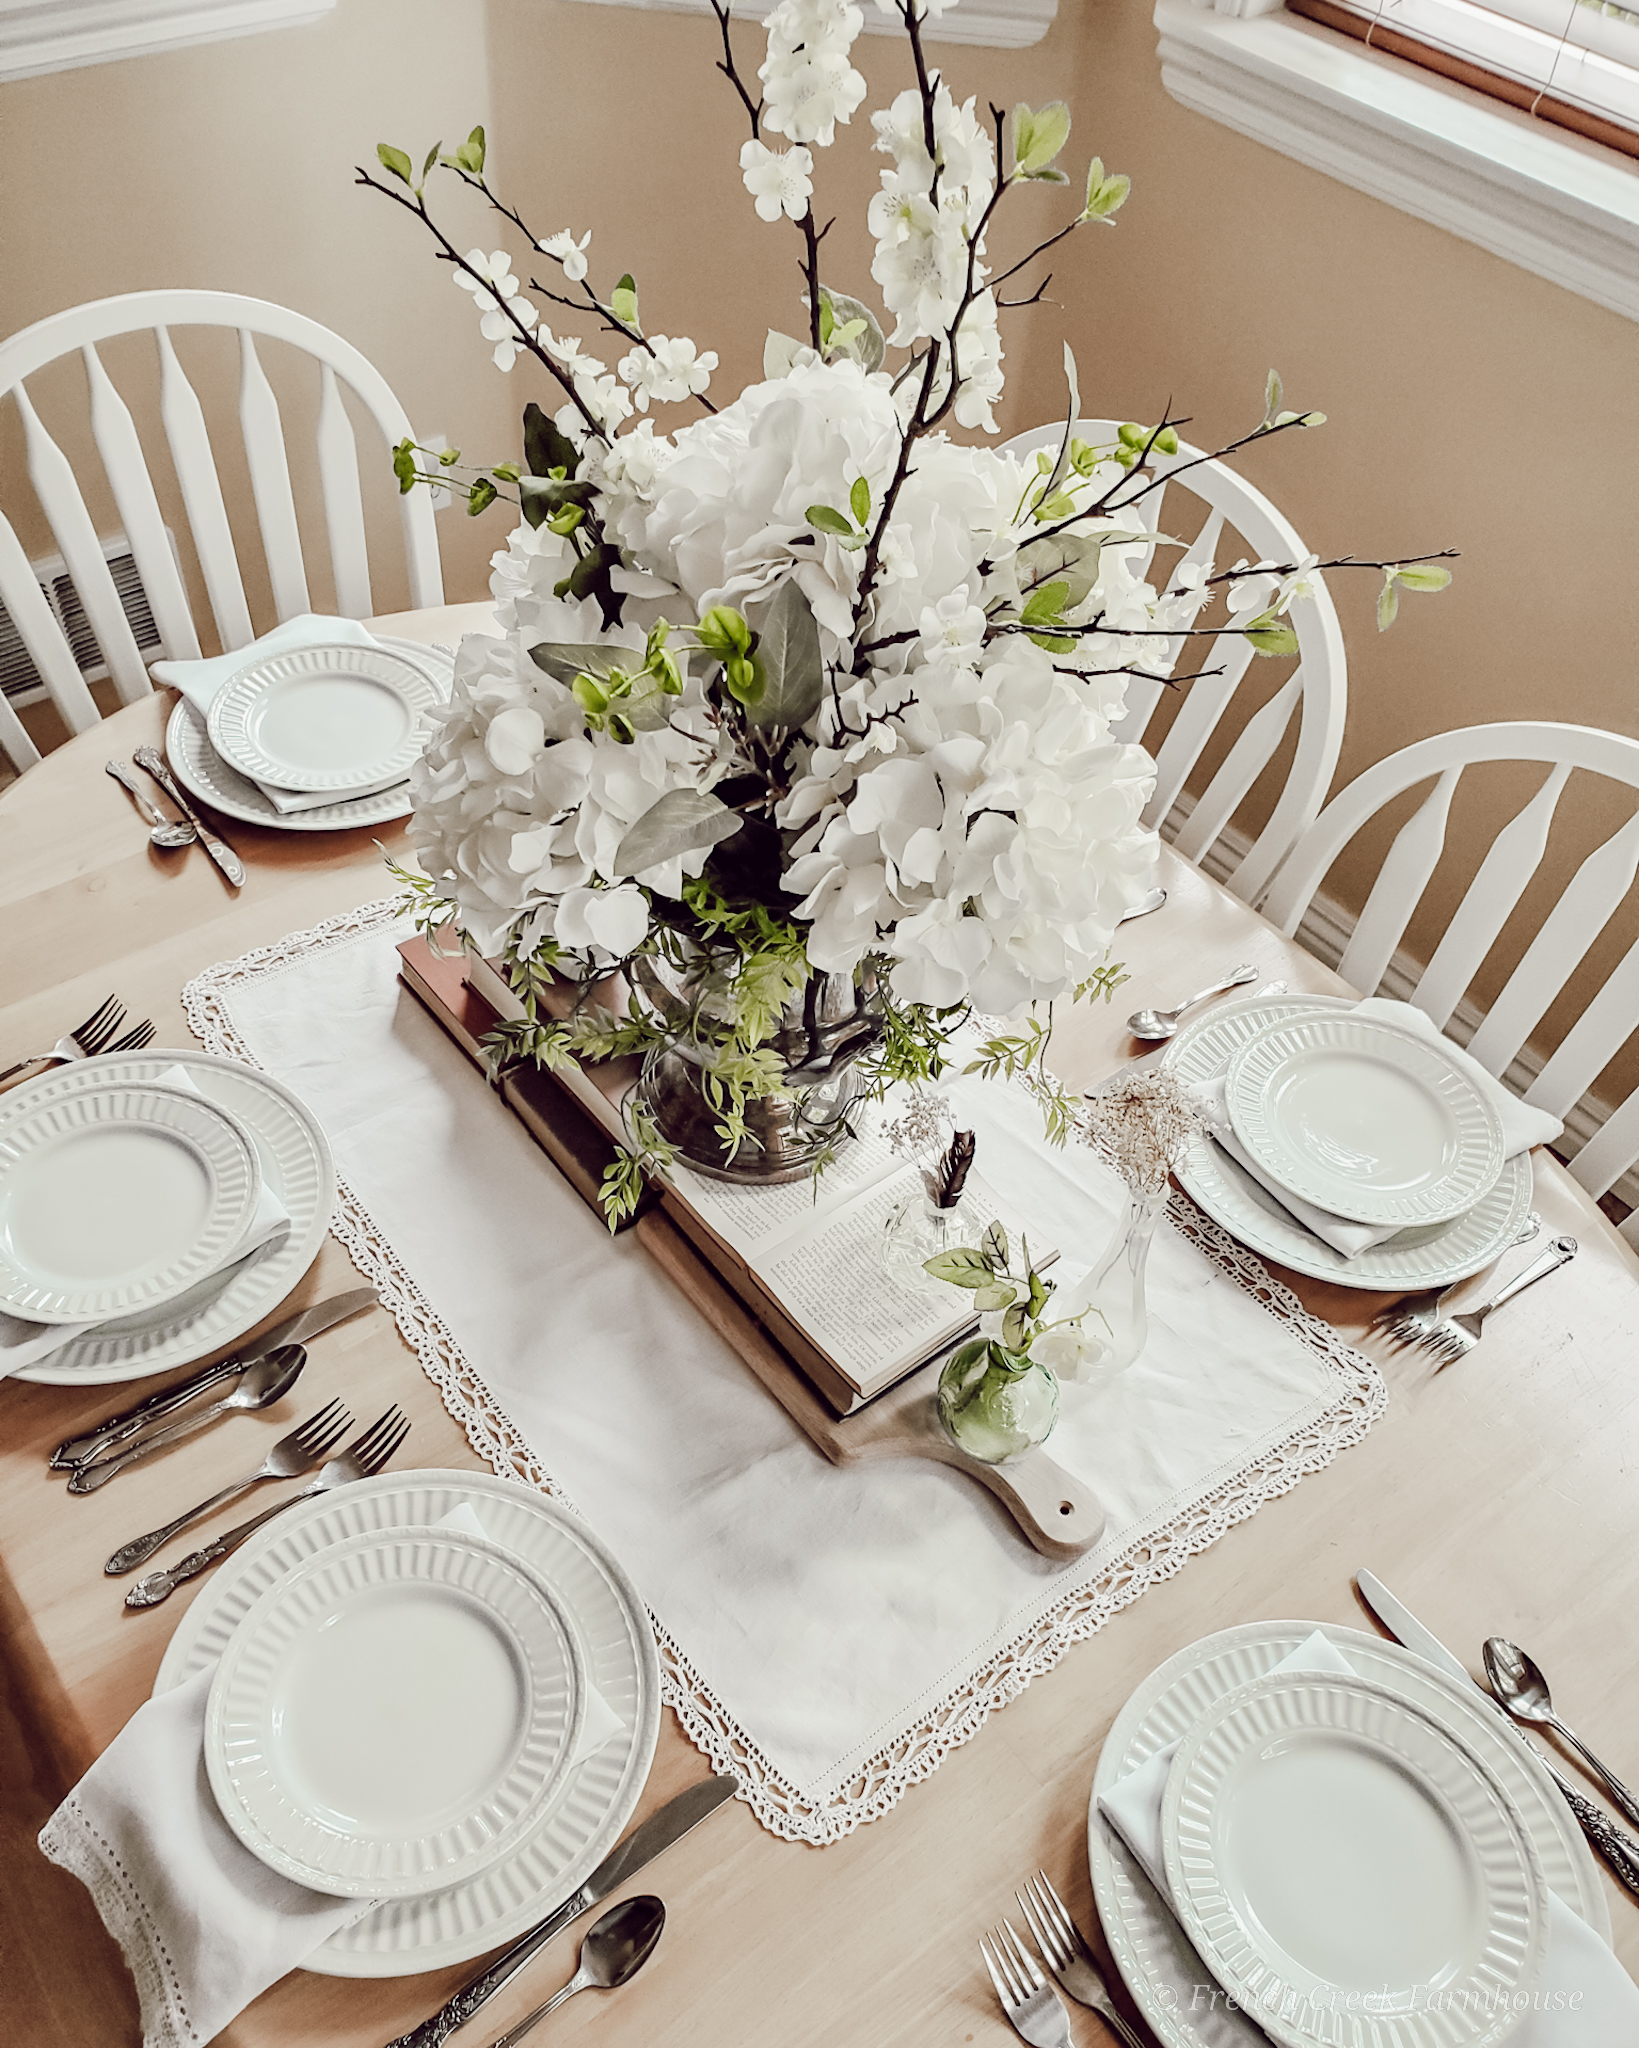 Spring tablescape with hydrangea centerpiece